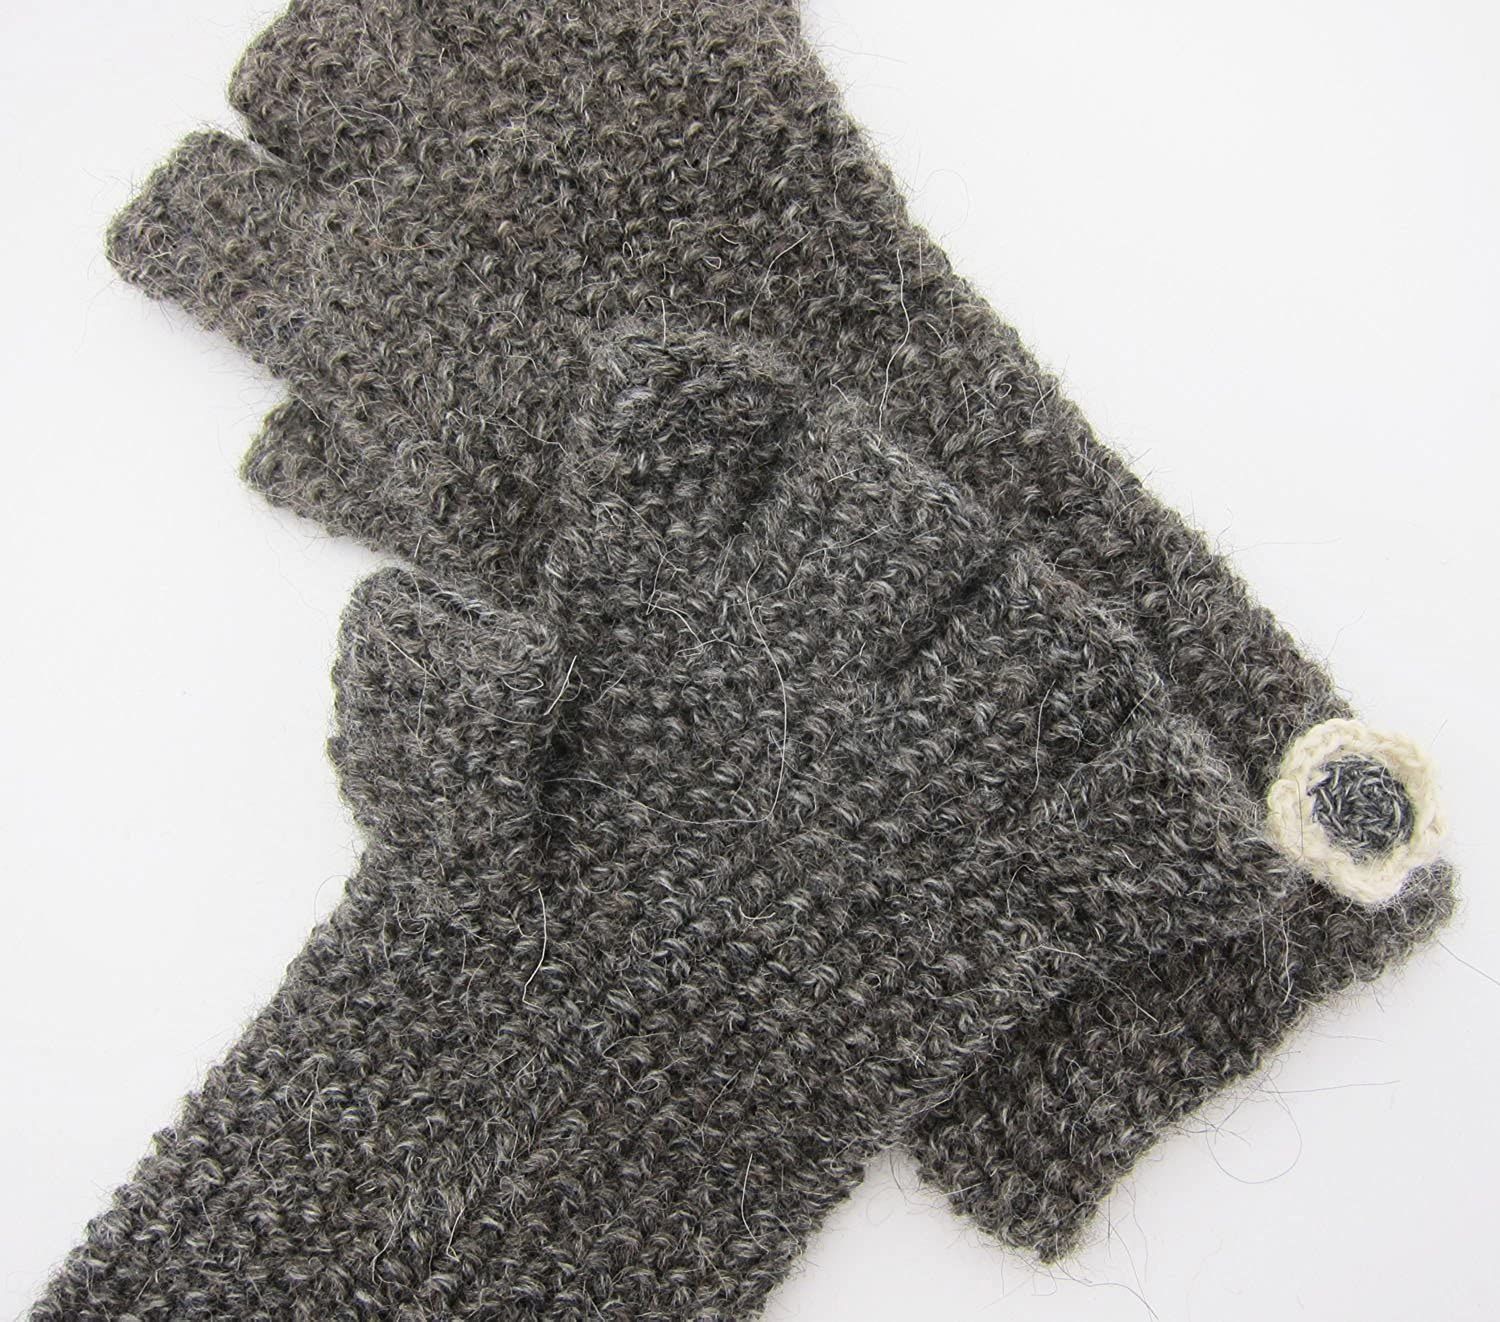 Made to Order Handmade Artisan Pure Alpaca Fingerless Gloves Knitted By Hand